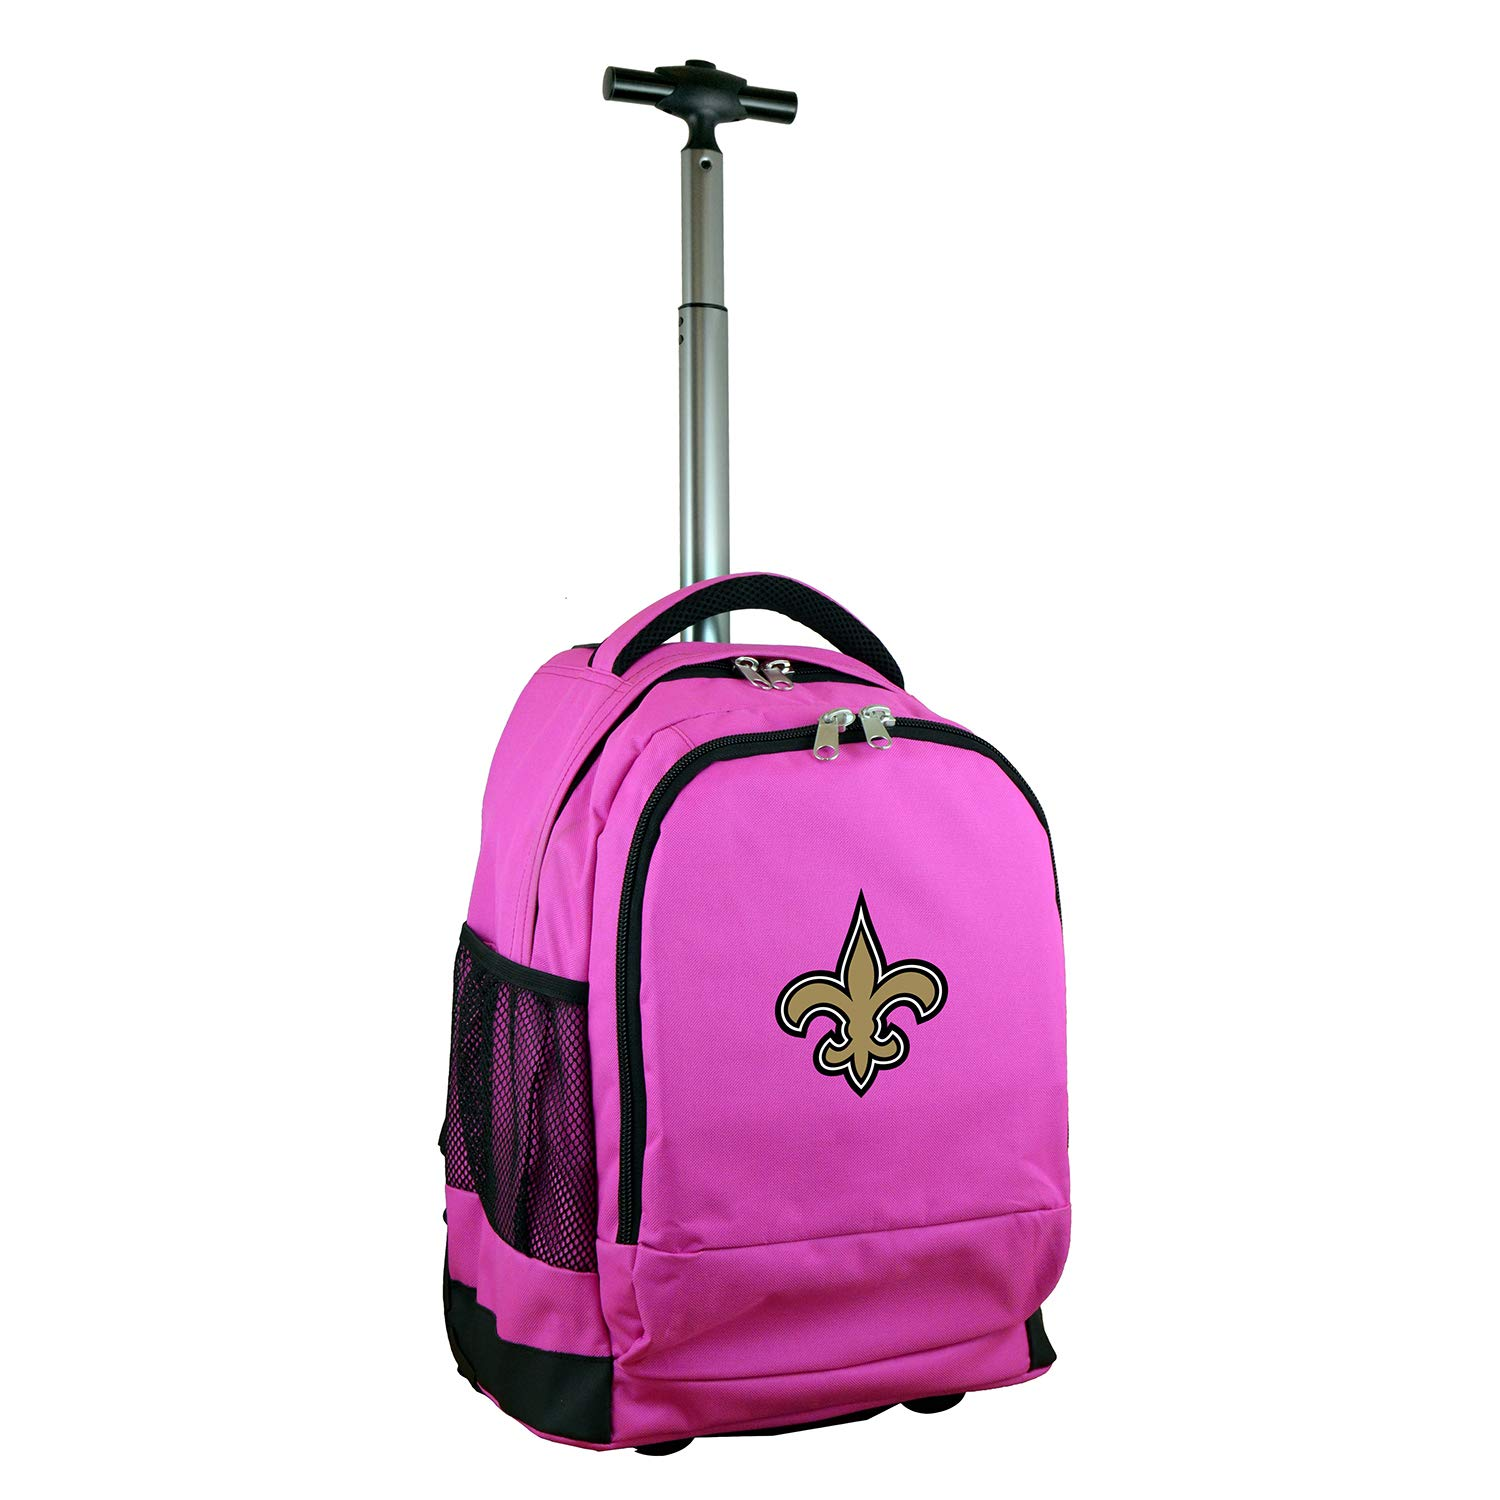 (New Orleans Saints) - NFL Expedition Wheeled Backpack, 48cm , Pink B01M4R5YJR